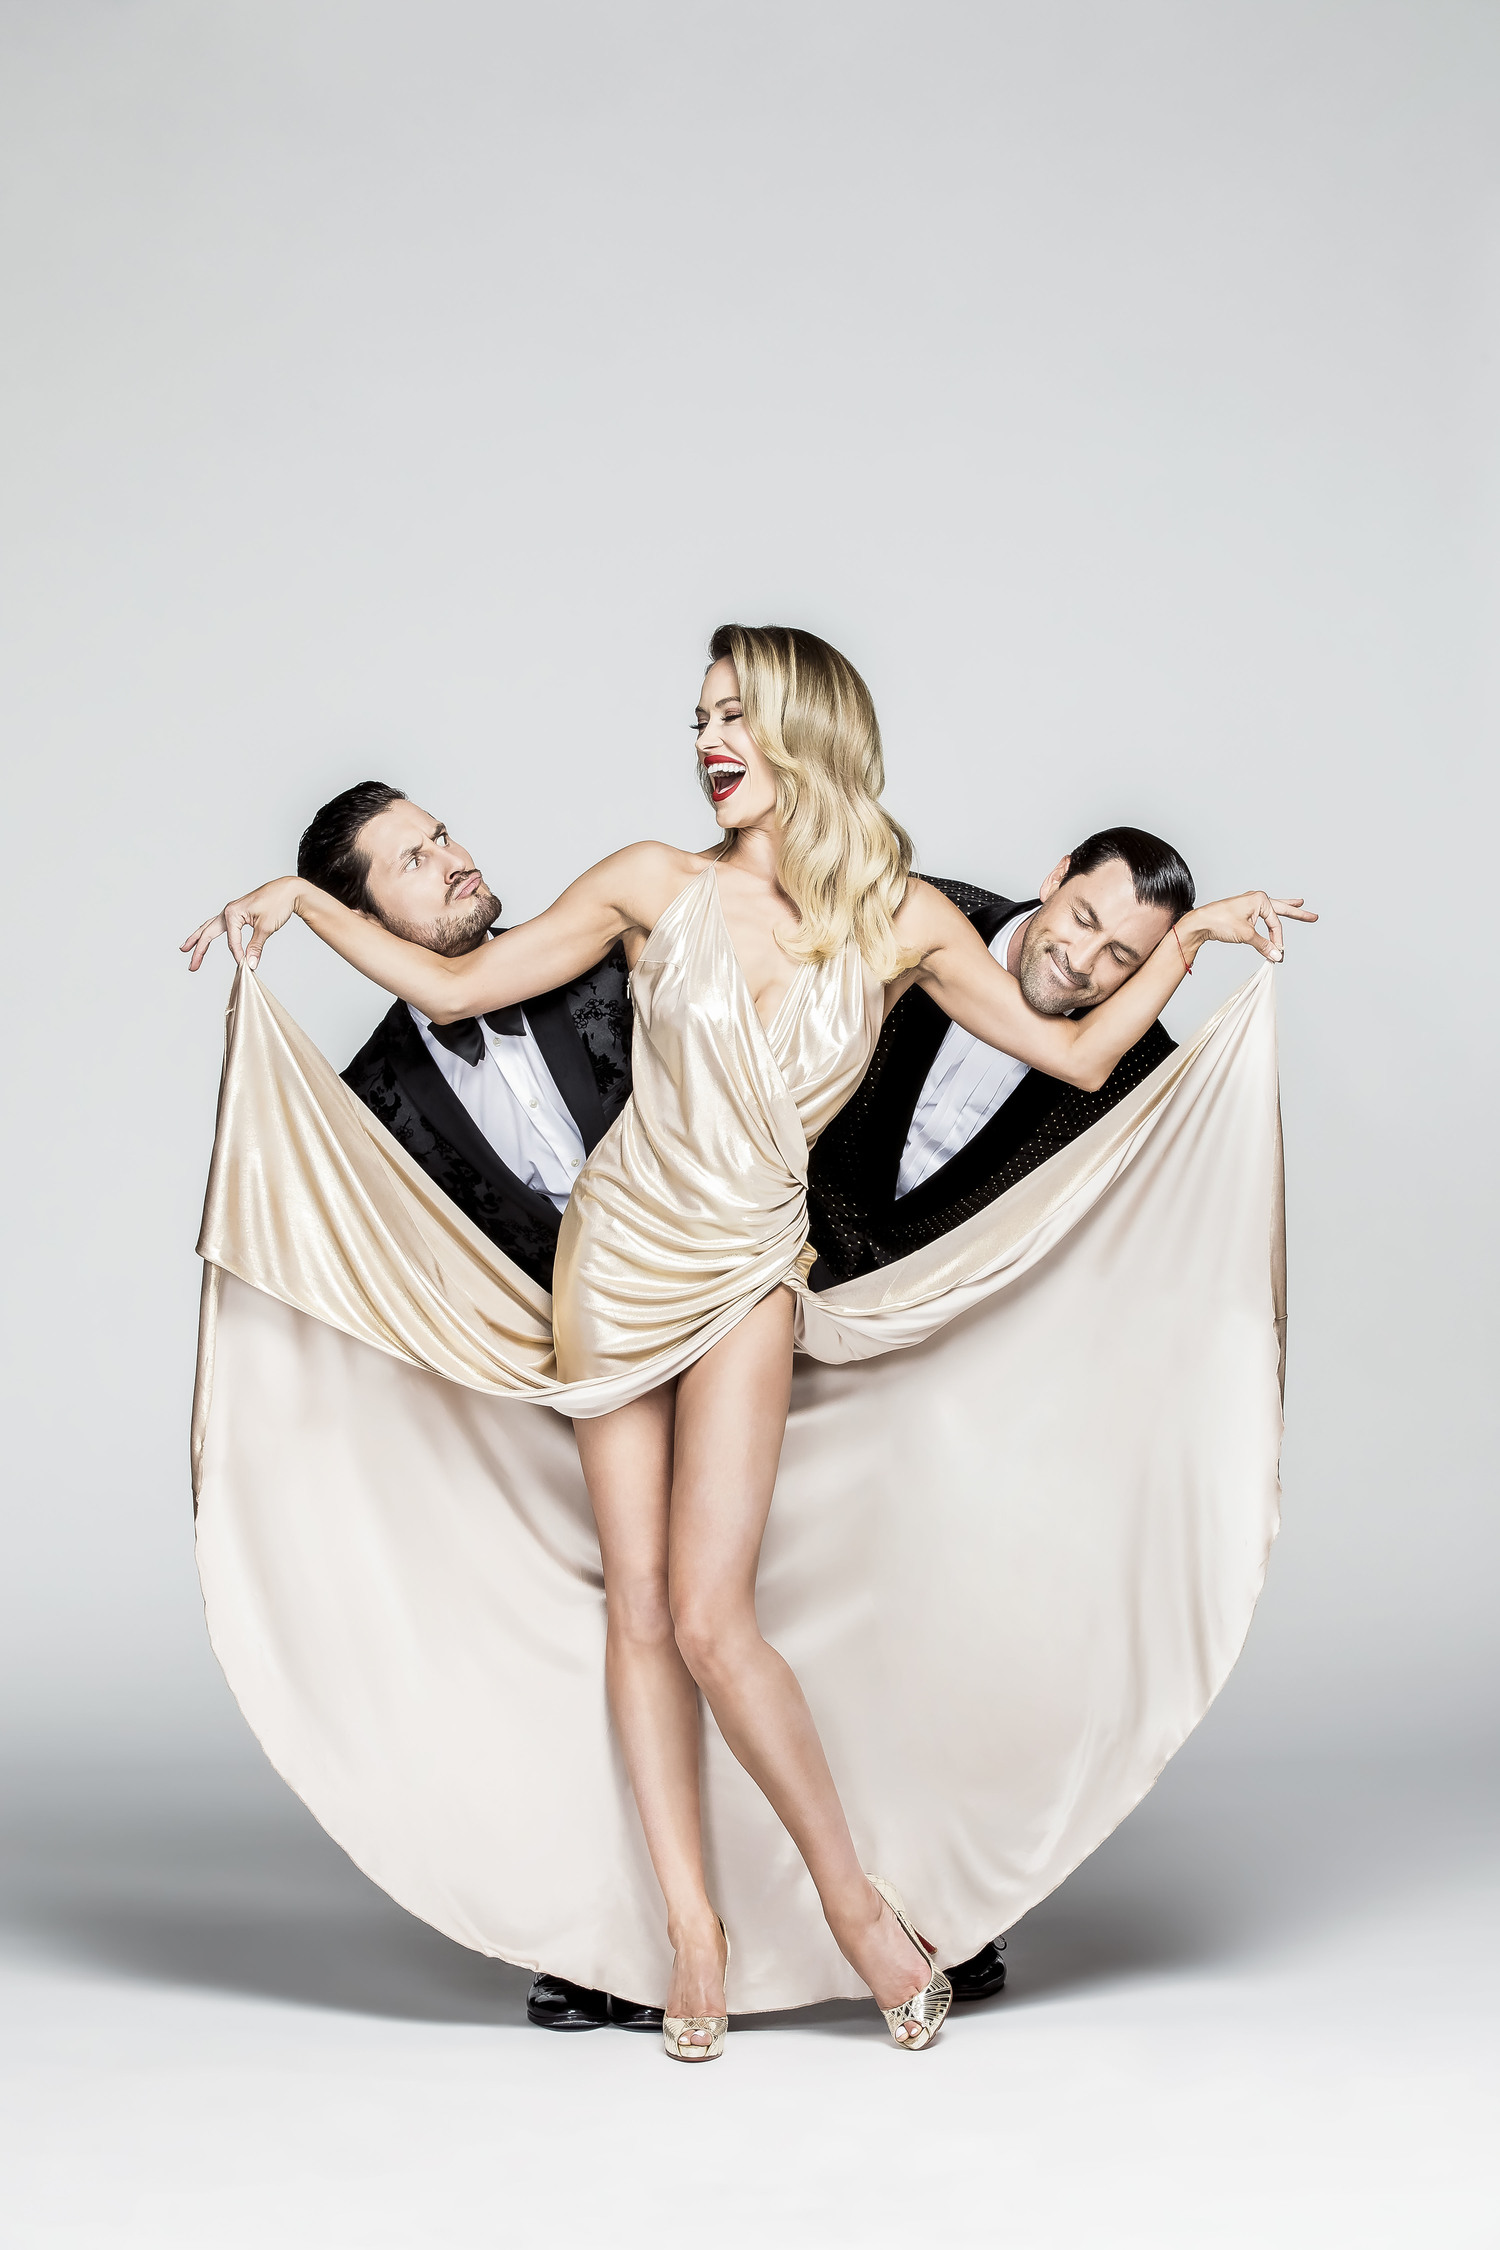 BWW Review: MAKS, VAL, & PETA LIVE ON TOUR: CONFIDENTIAL Brings Love Story to Durham Performing Arts Center